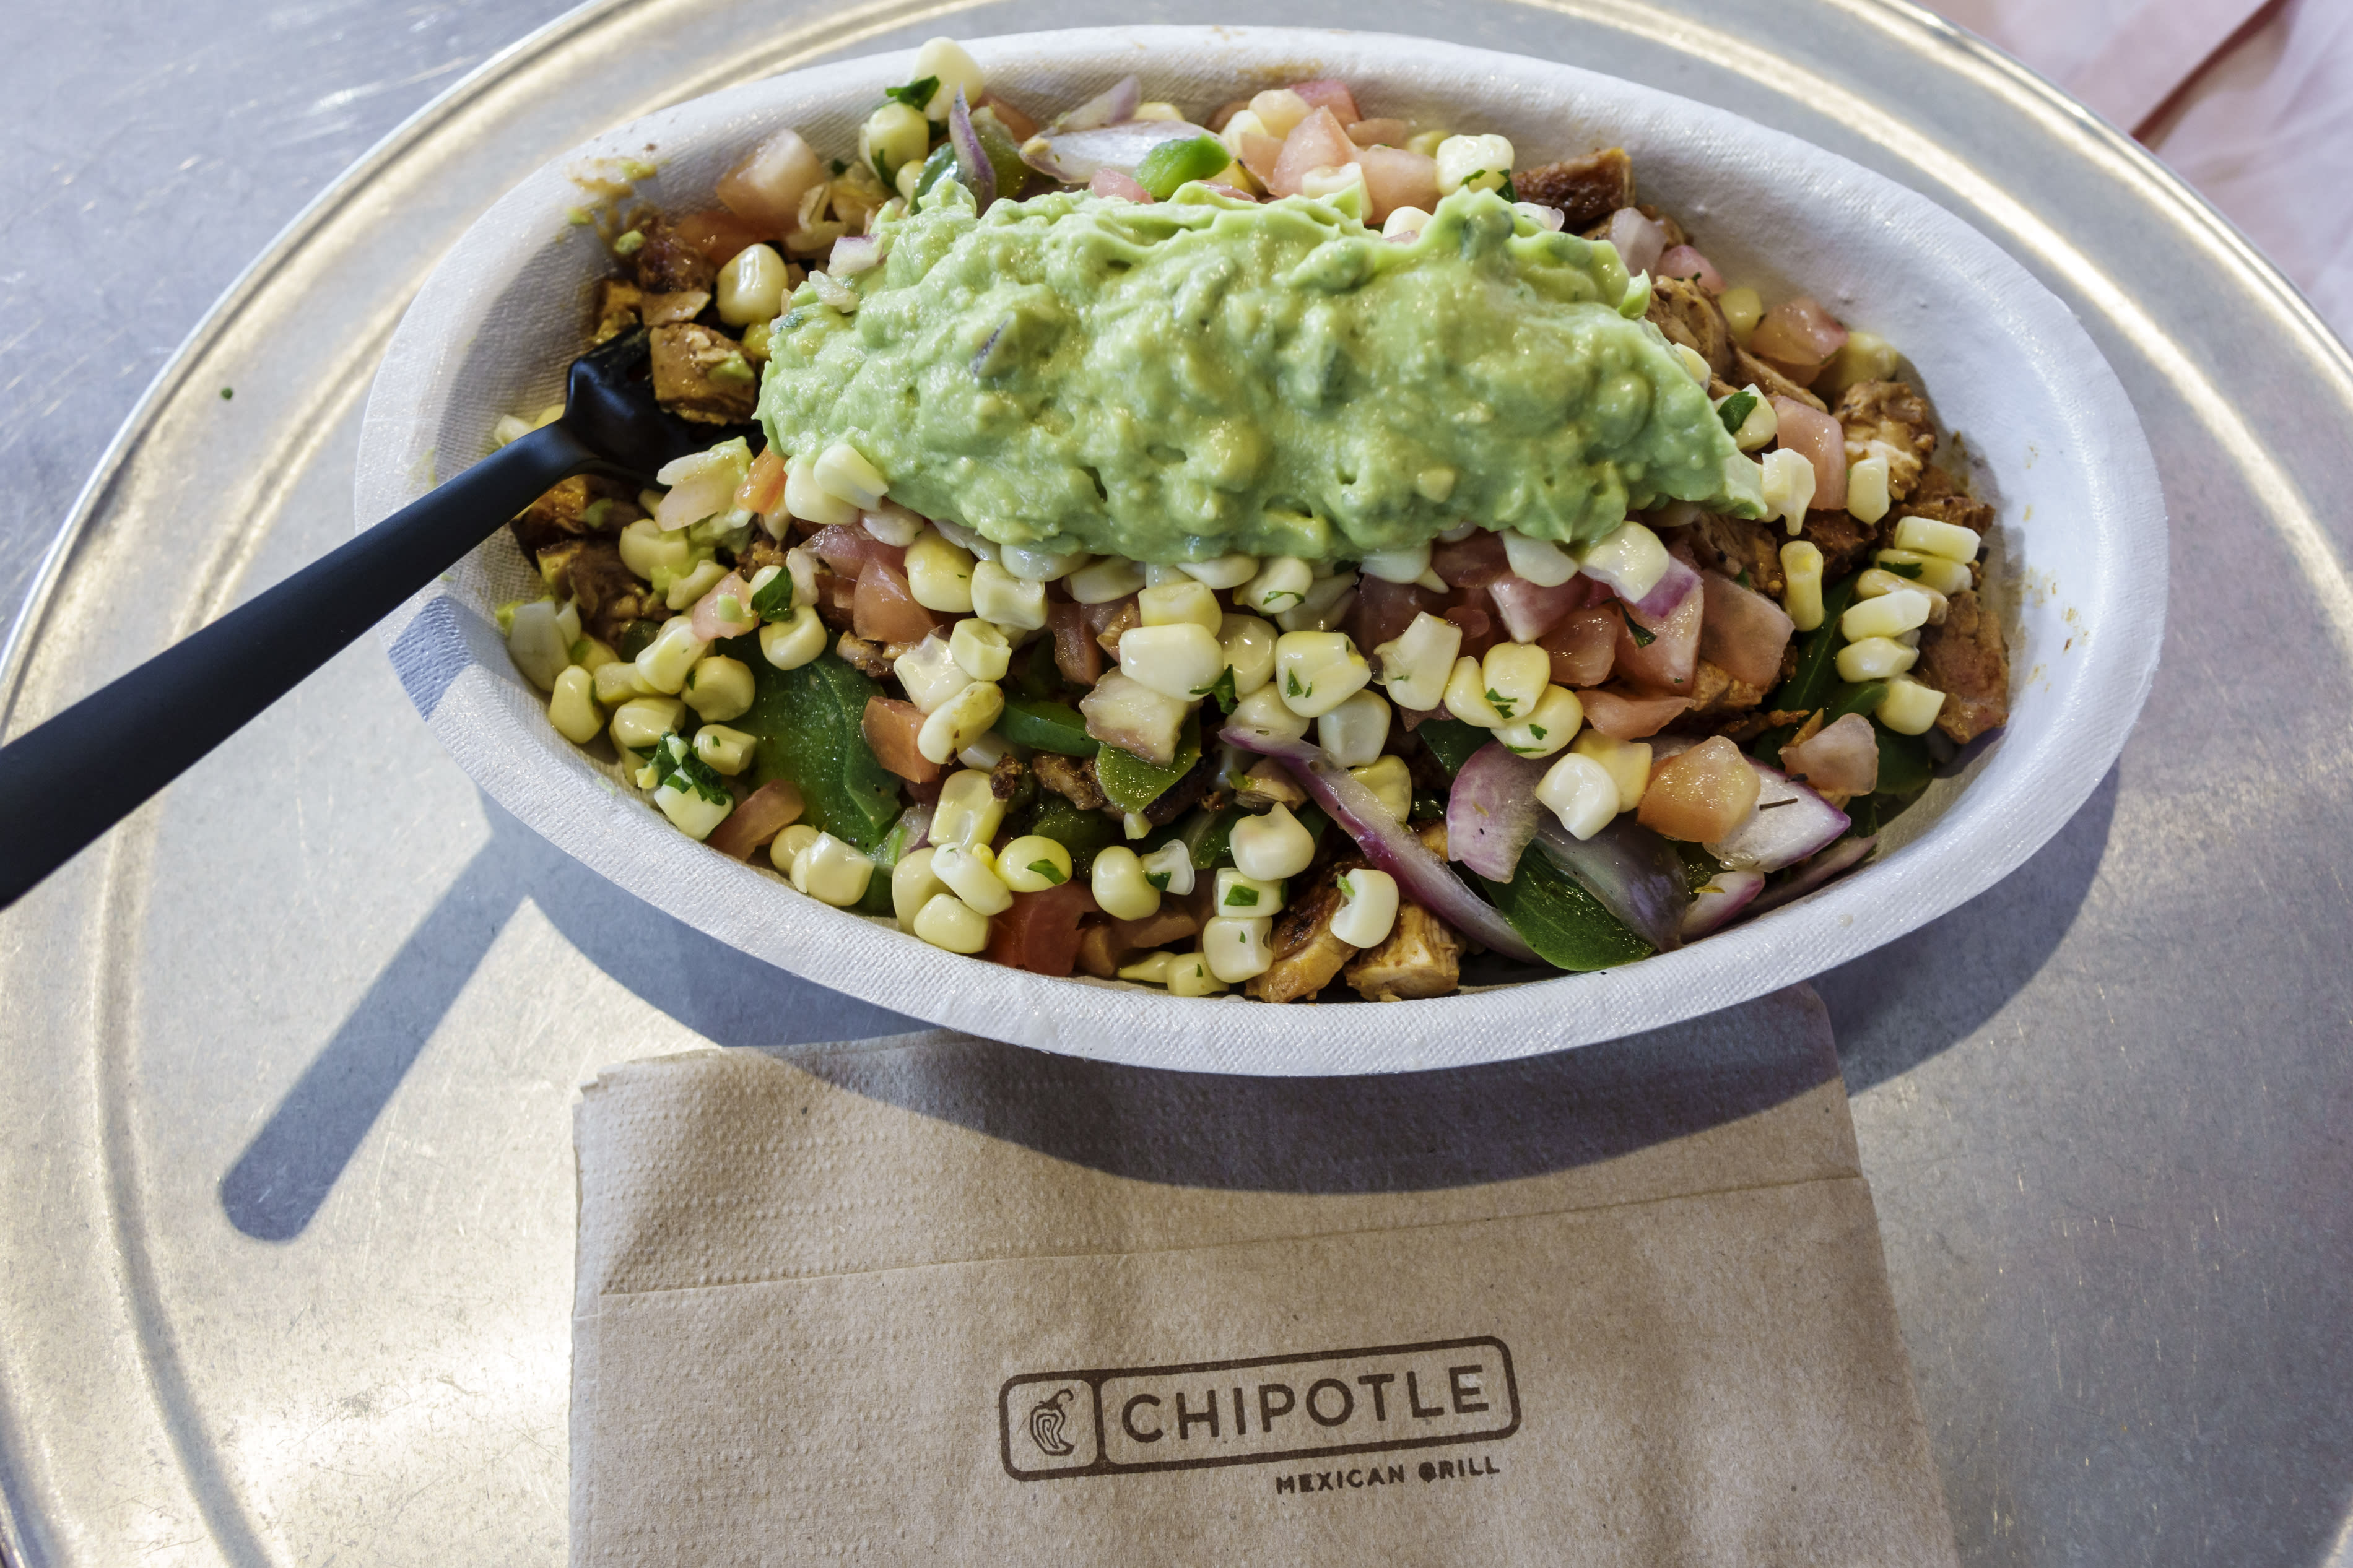 Chipotle CFO: We are closing in on $1 billion in digital sales